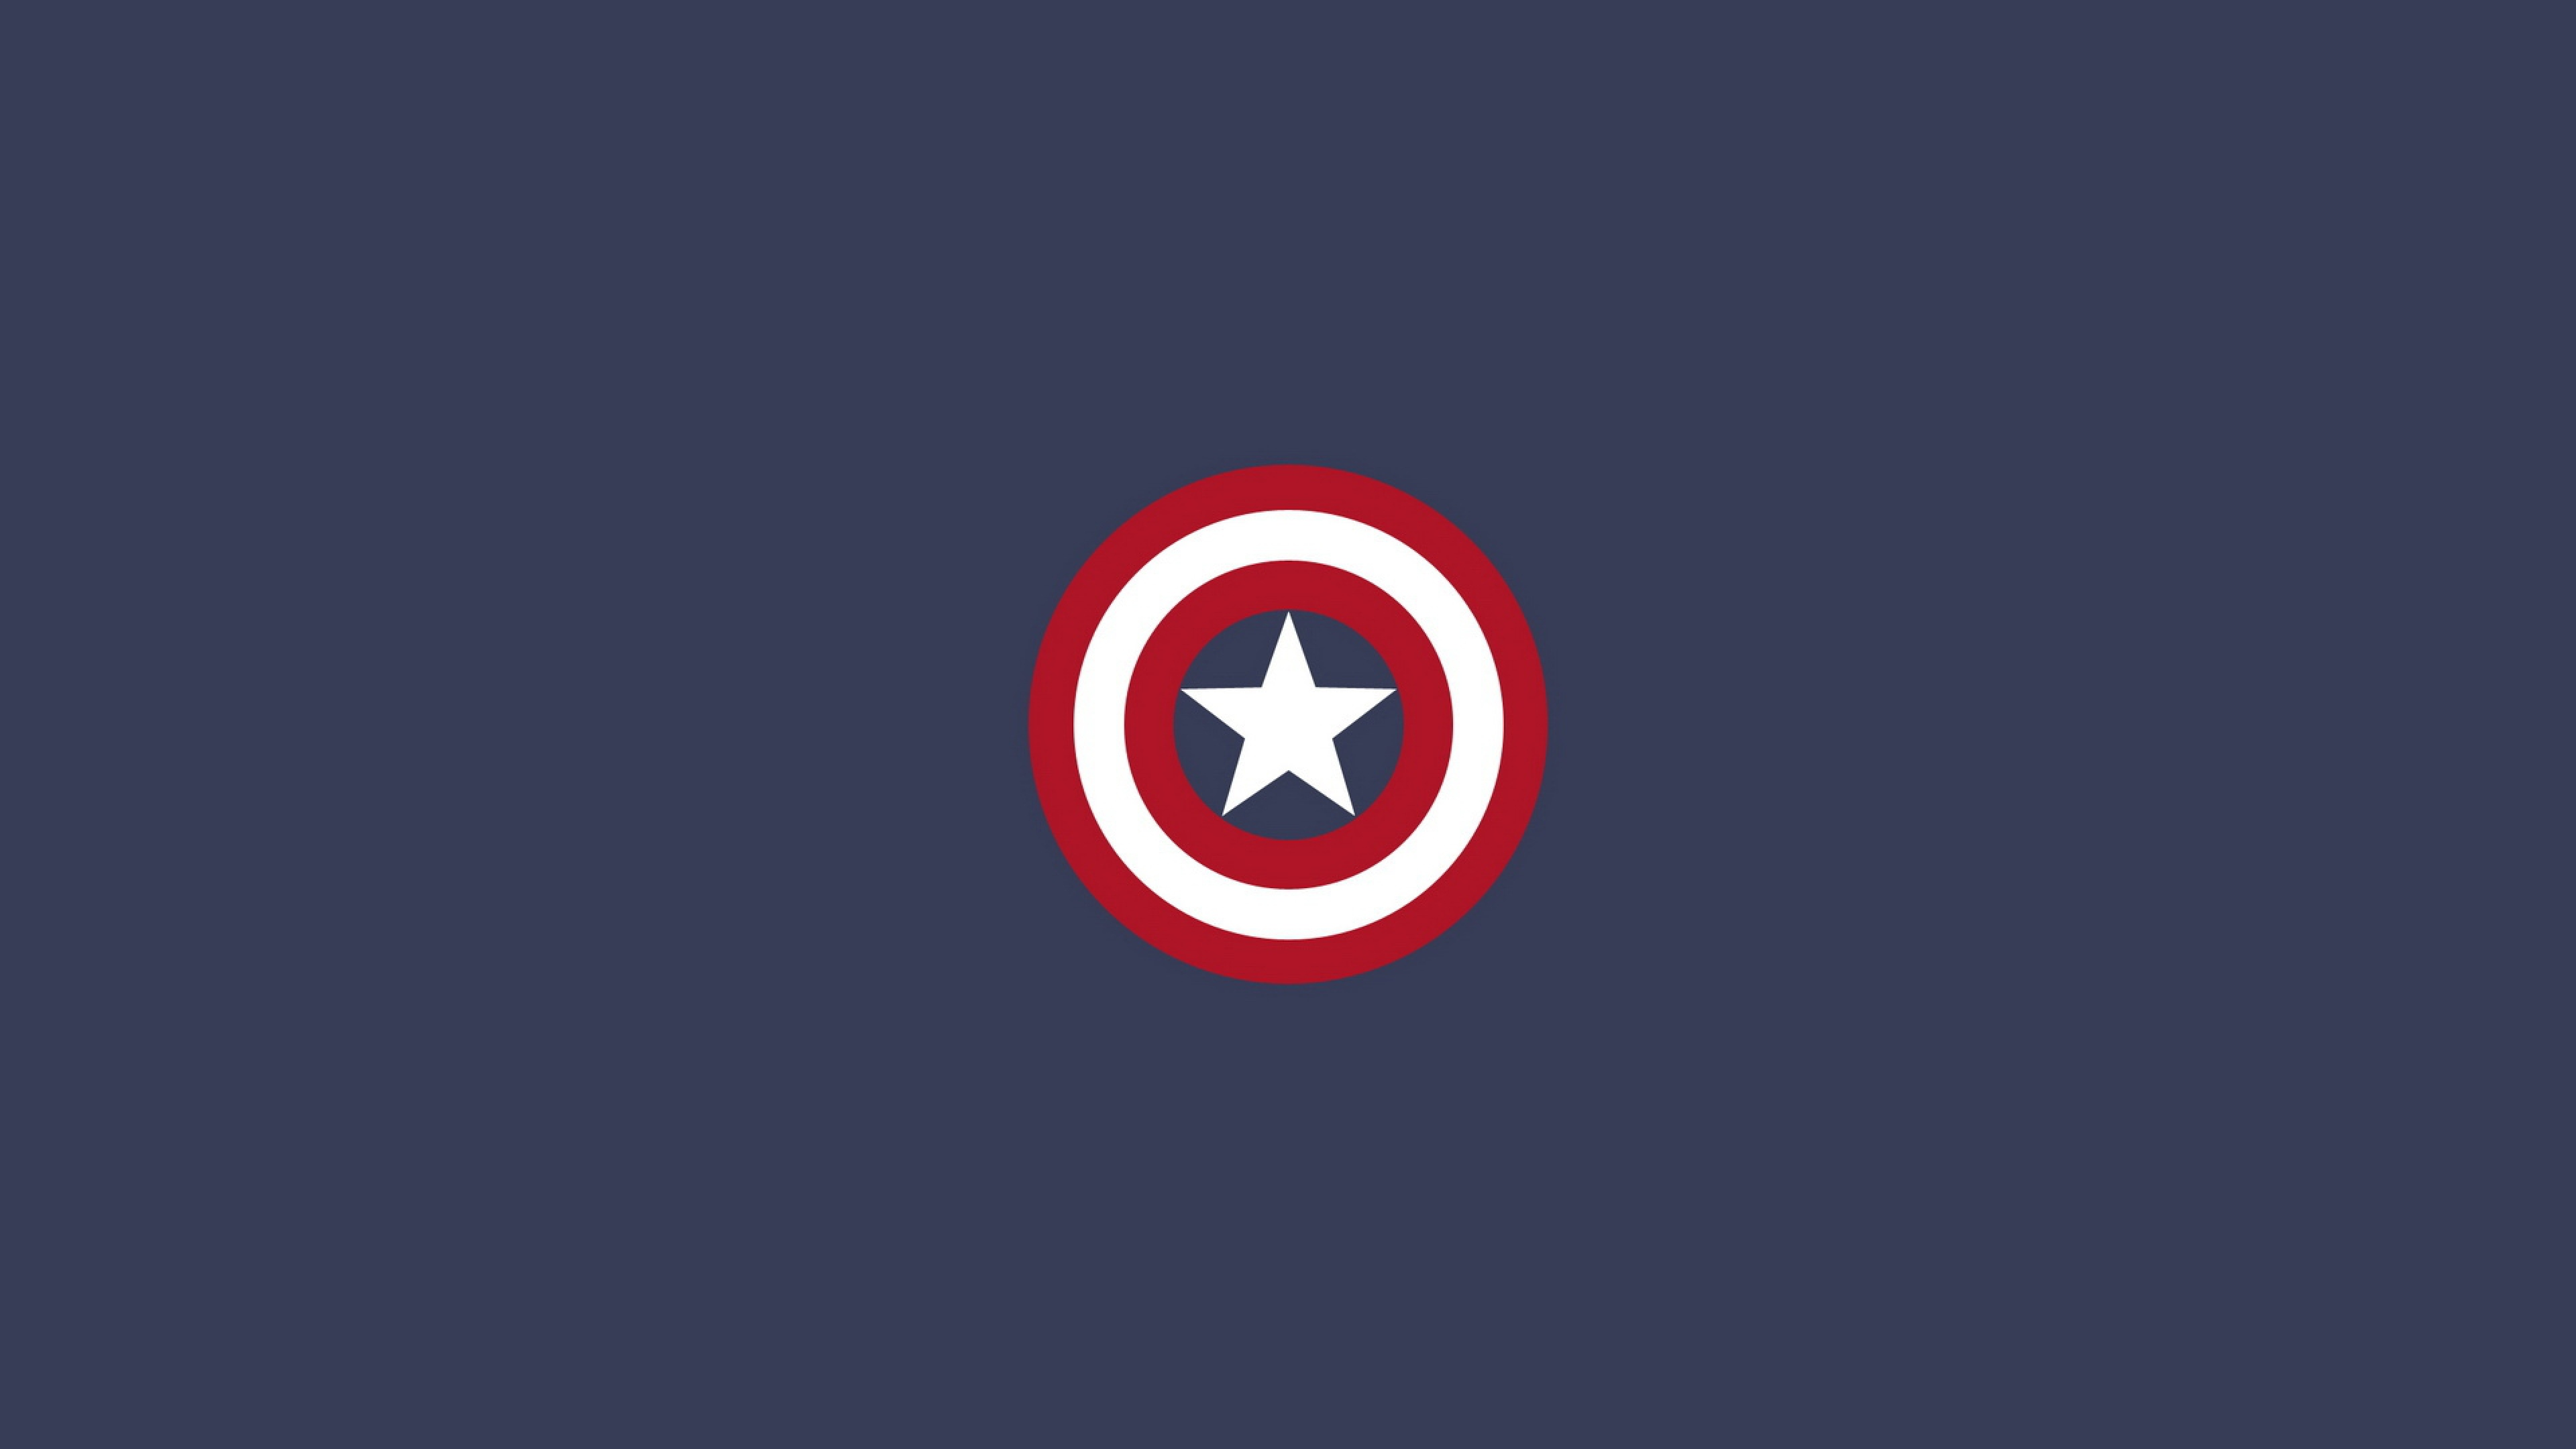 captain america star background 3840x2160